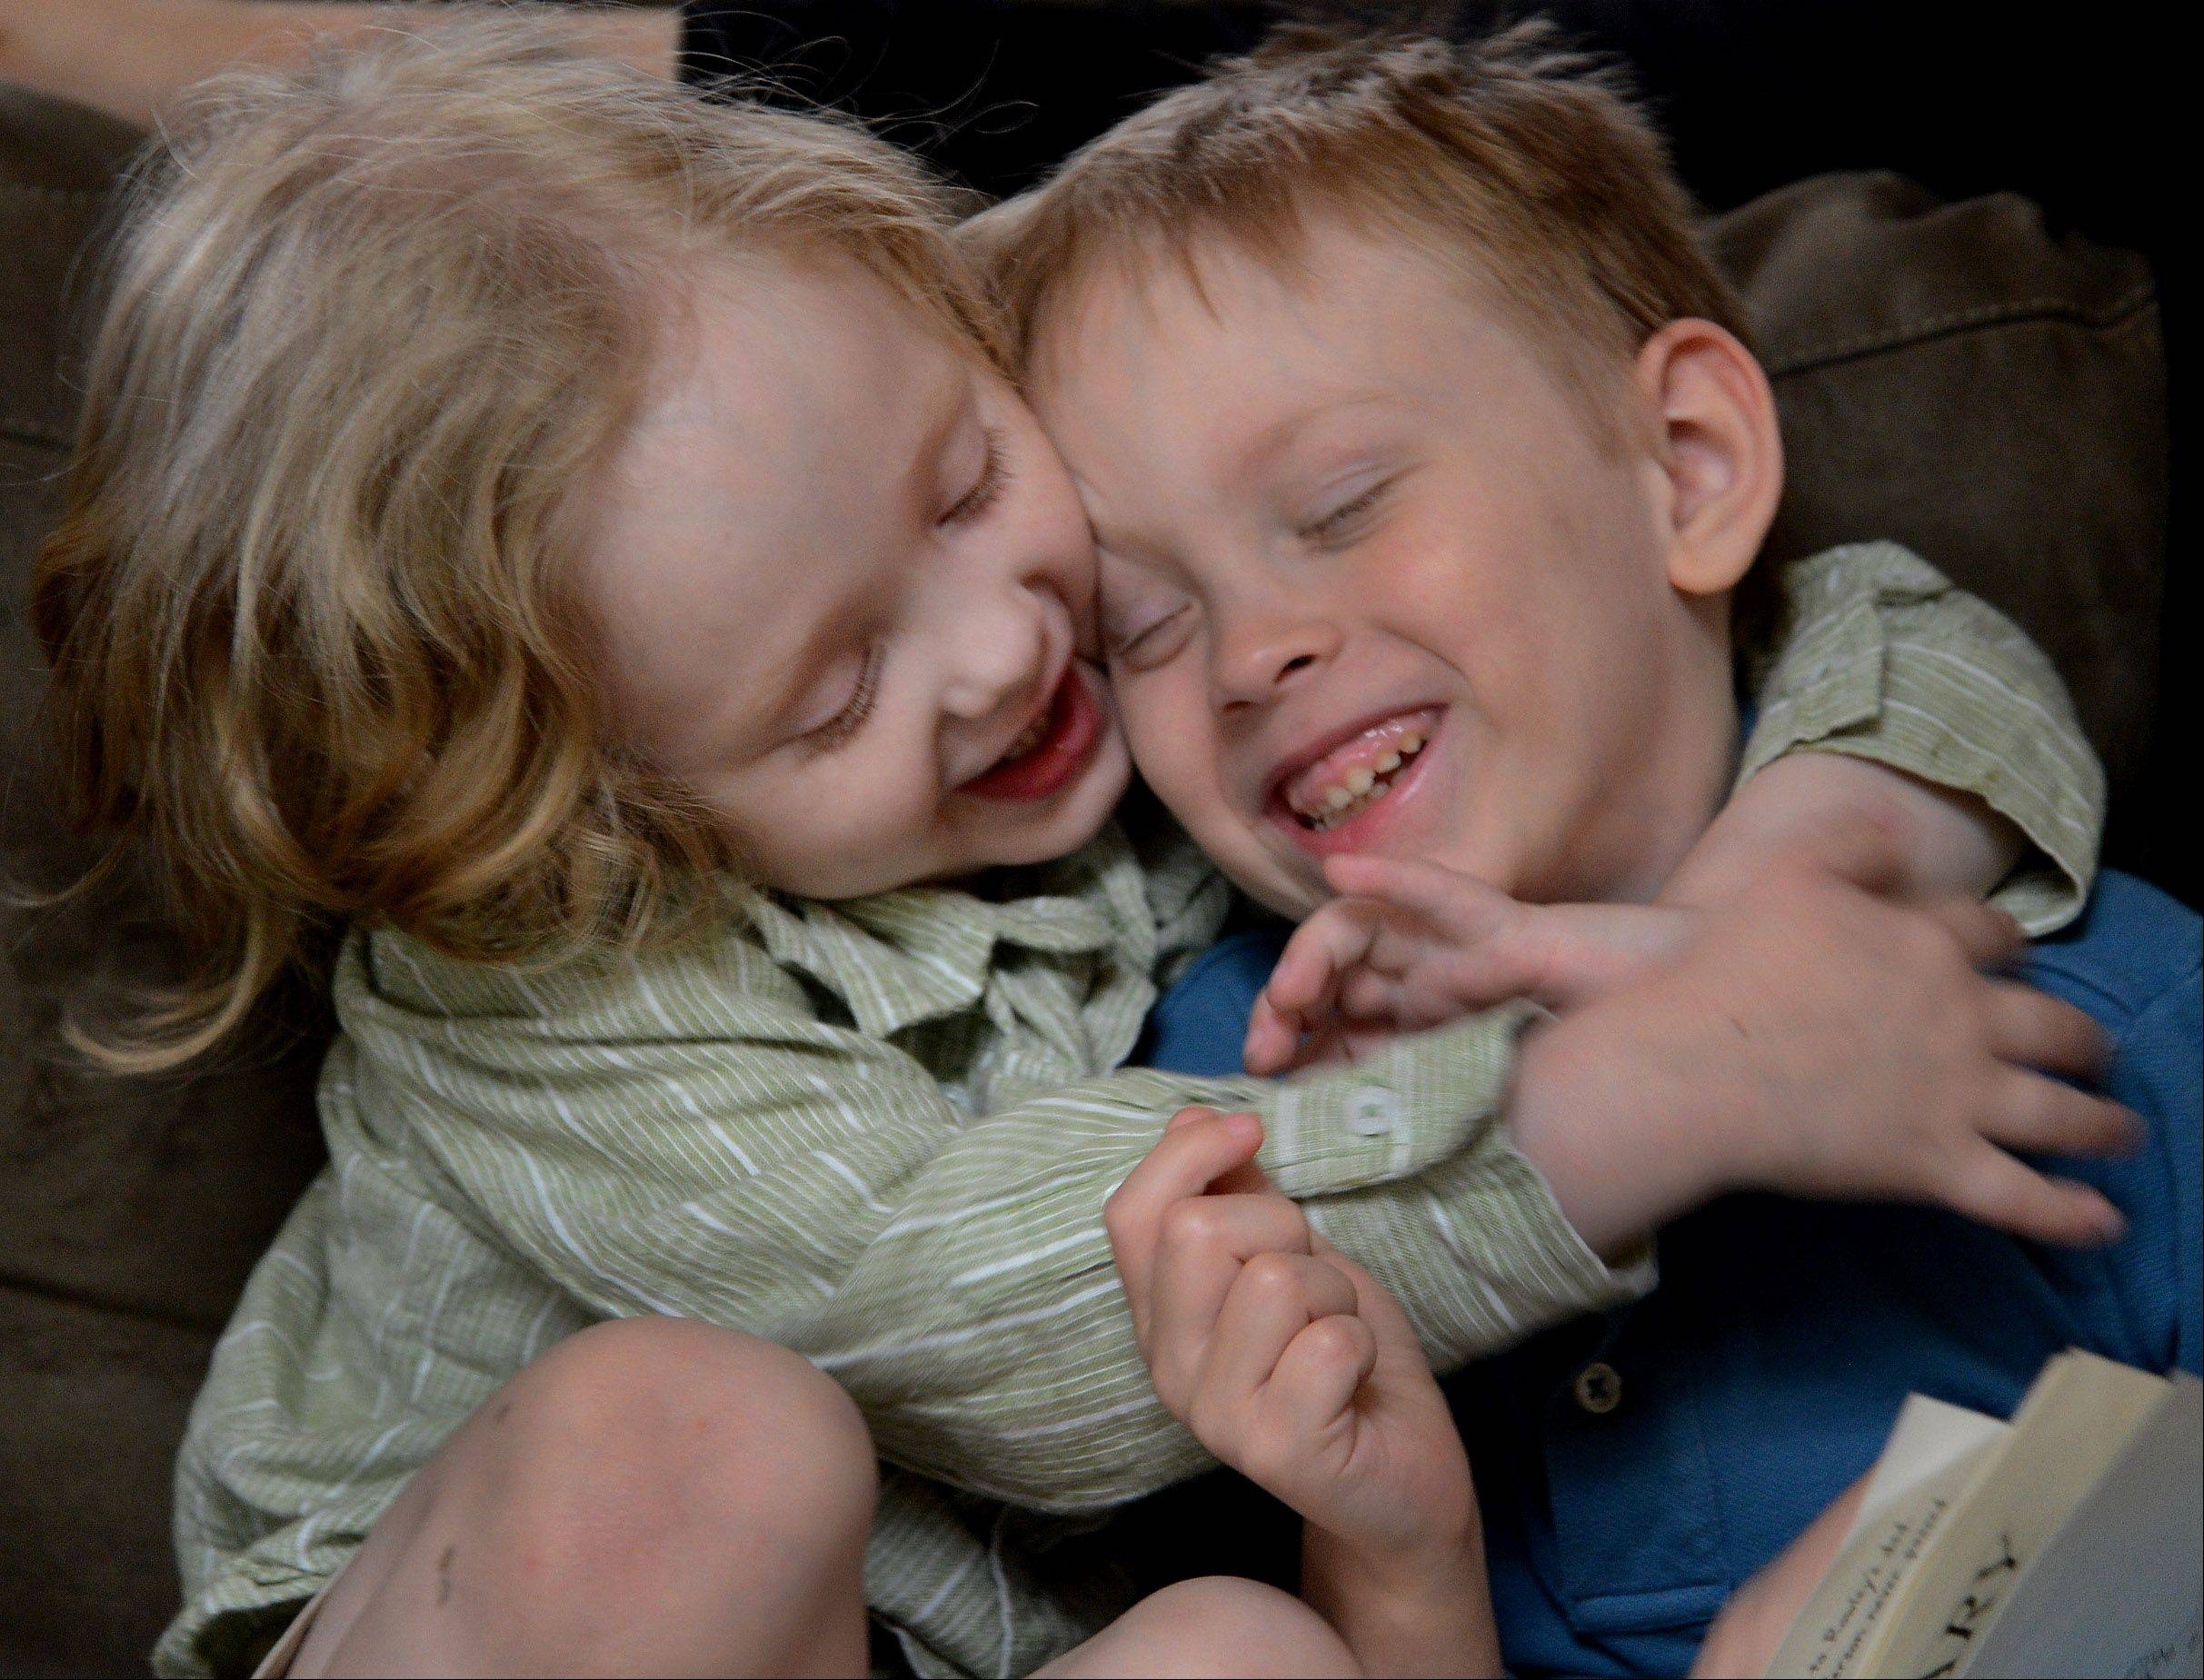 Liver transplant twins, Jake, left, and Luke Swanson, play with each other.